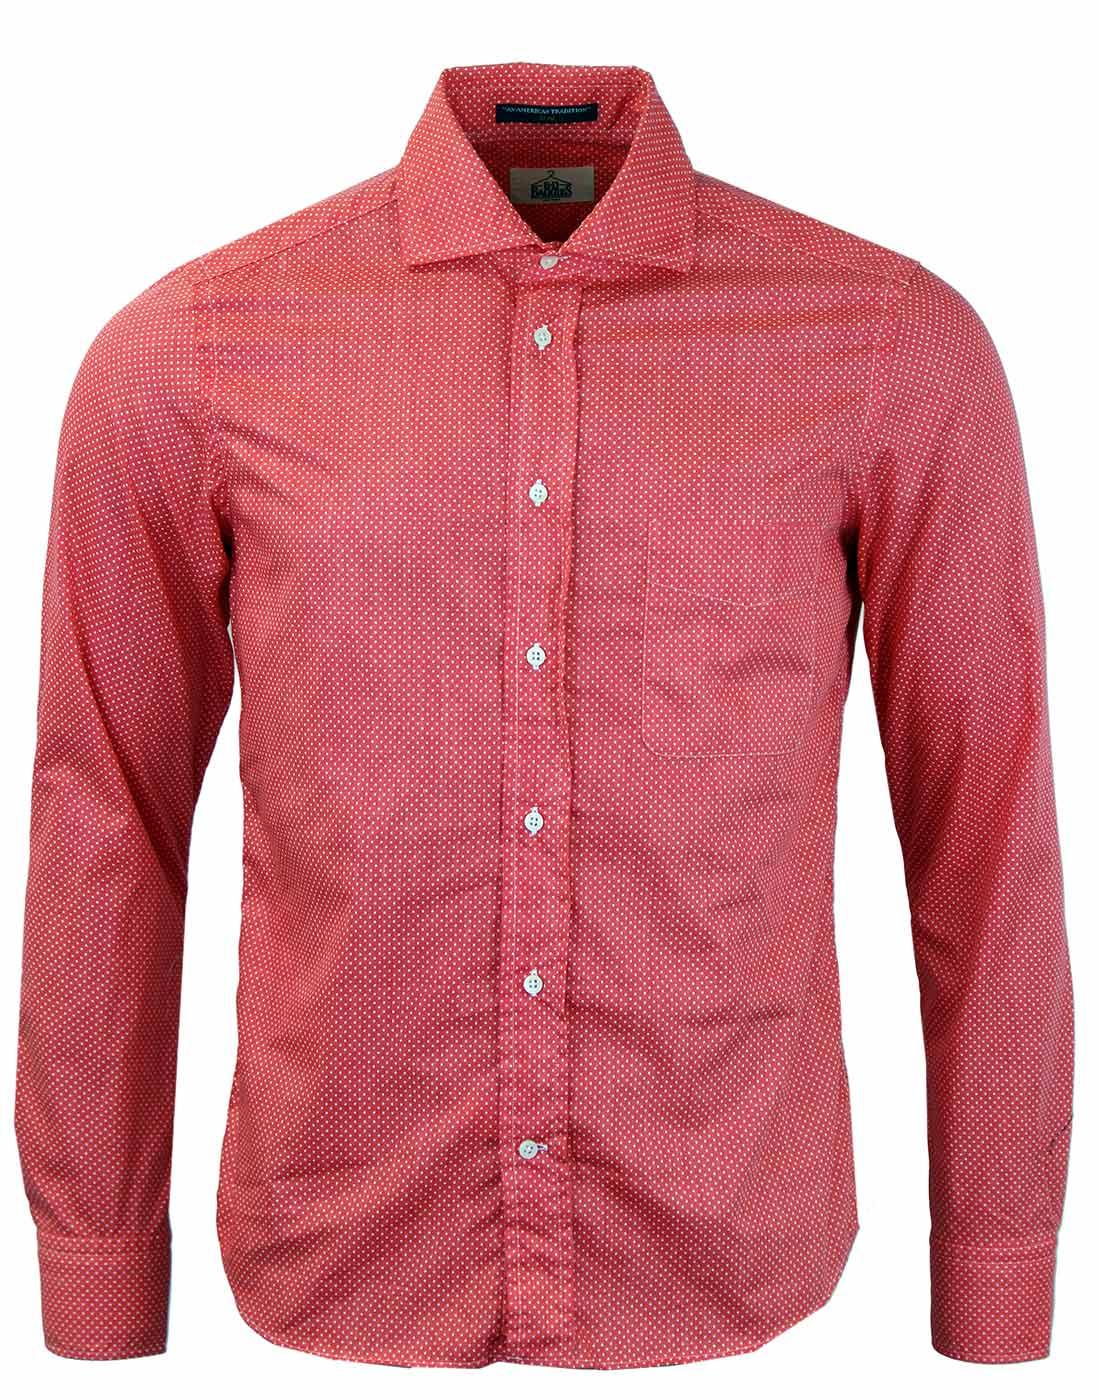 Dexter B D BAGGIES L/S Slim Fit Polka Dot Shirt R